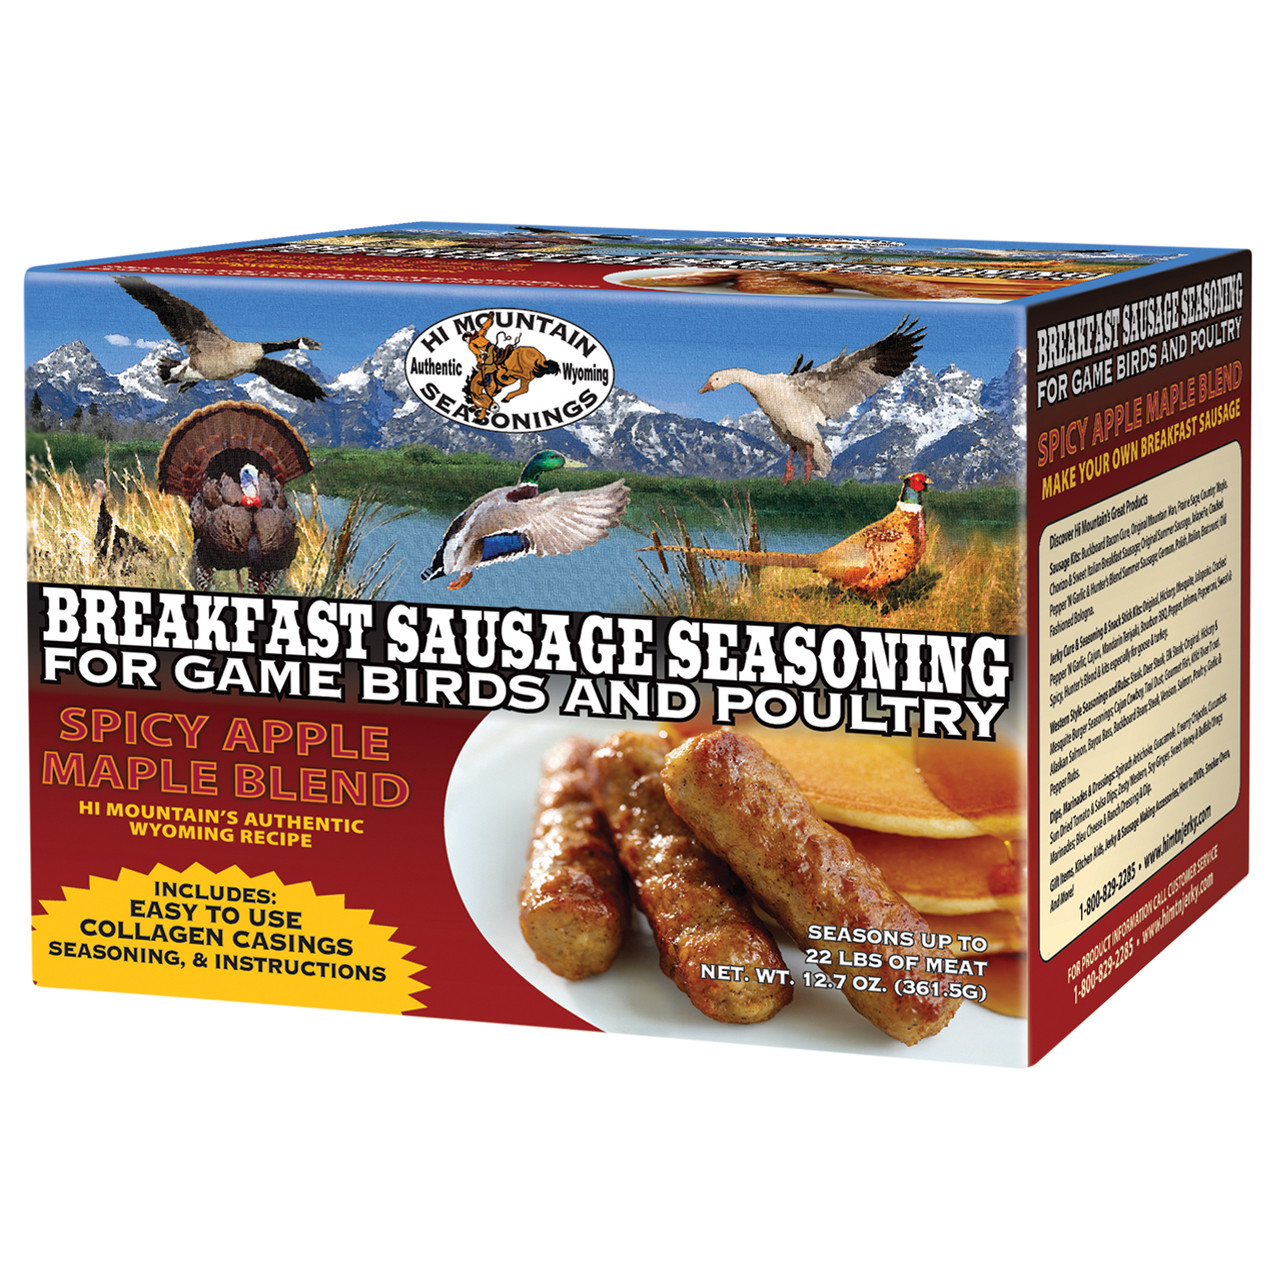 Spicy Apple Maple Breakfast Sausage Blend Seasoning